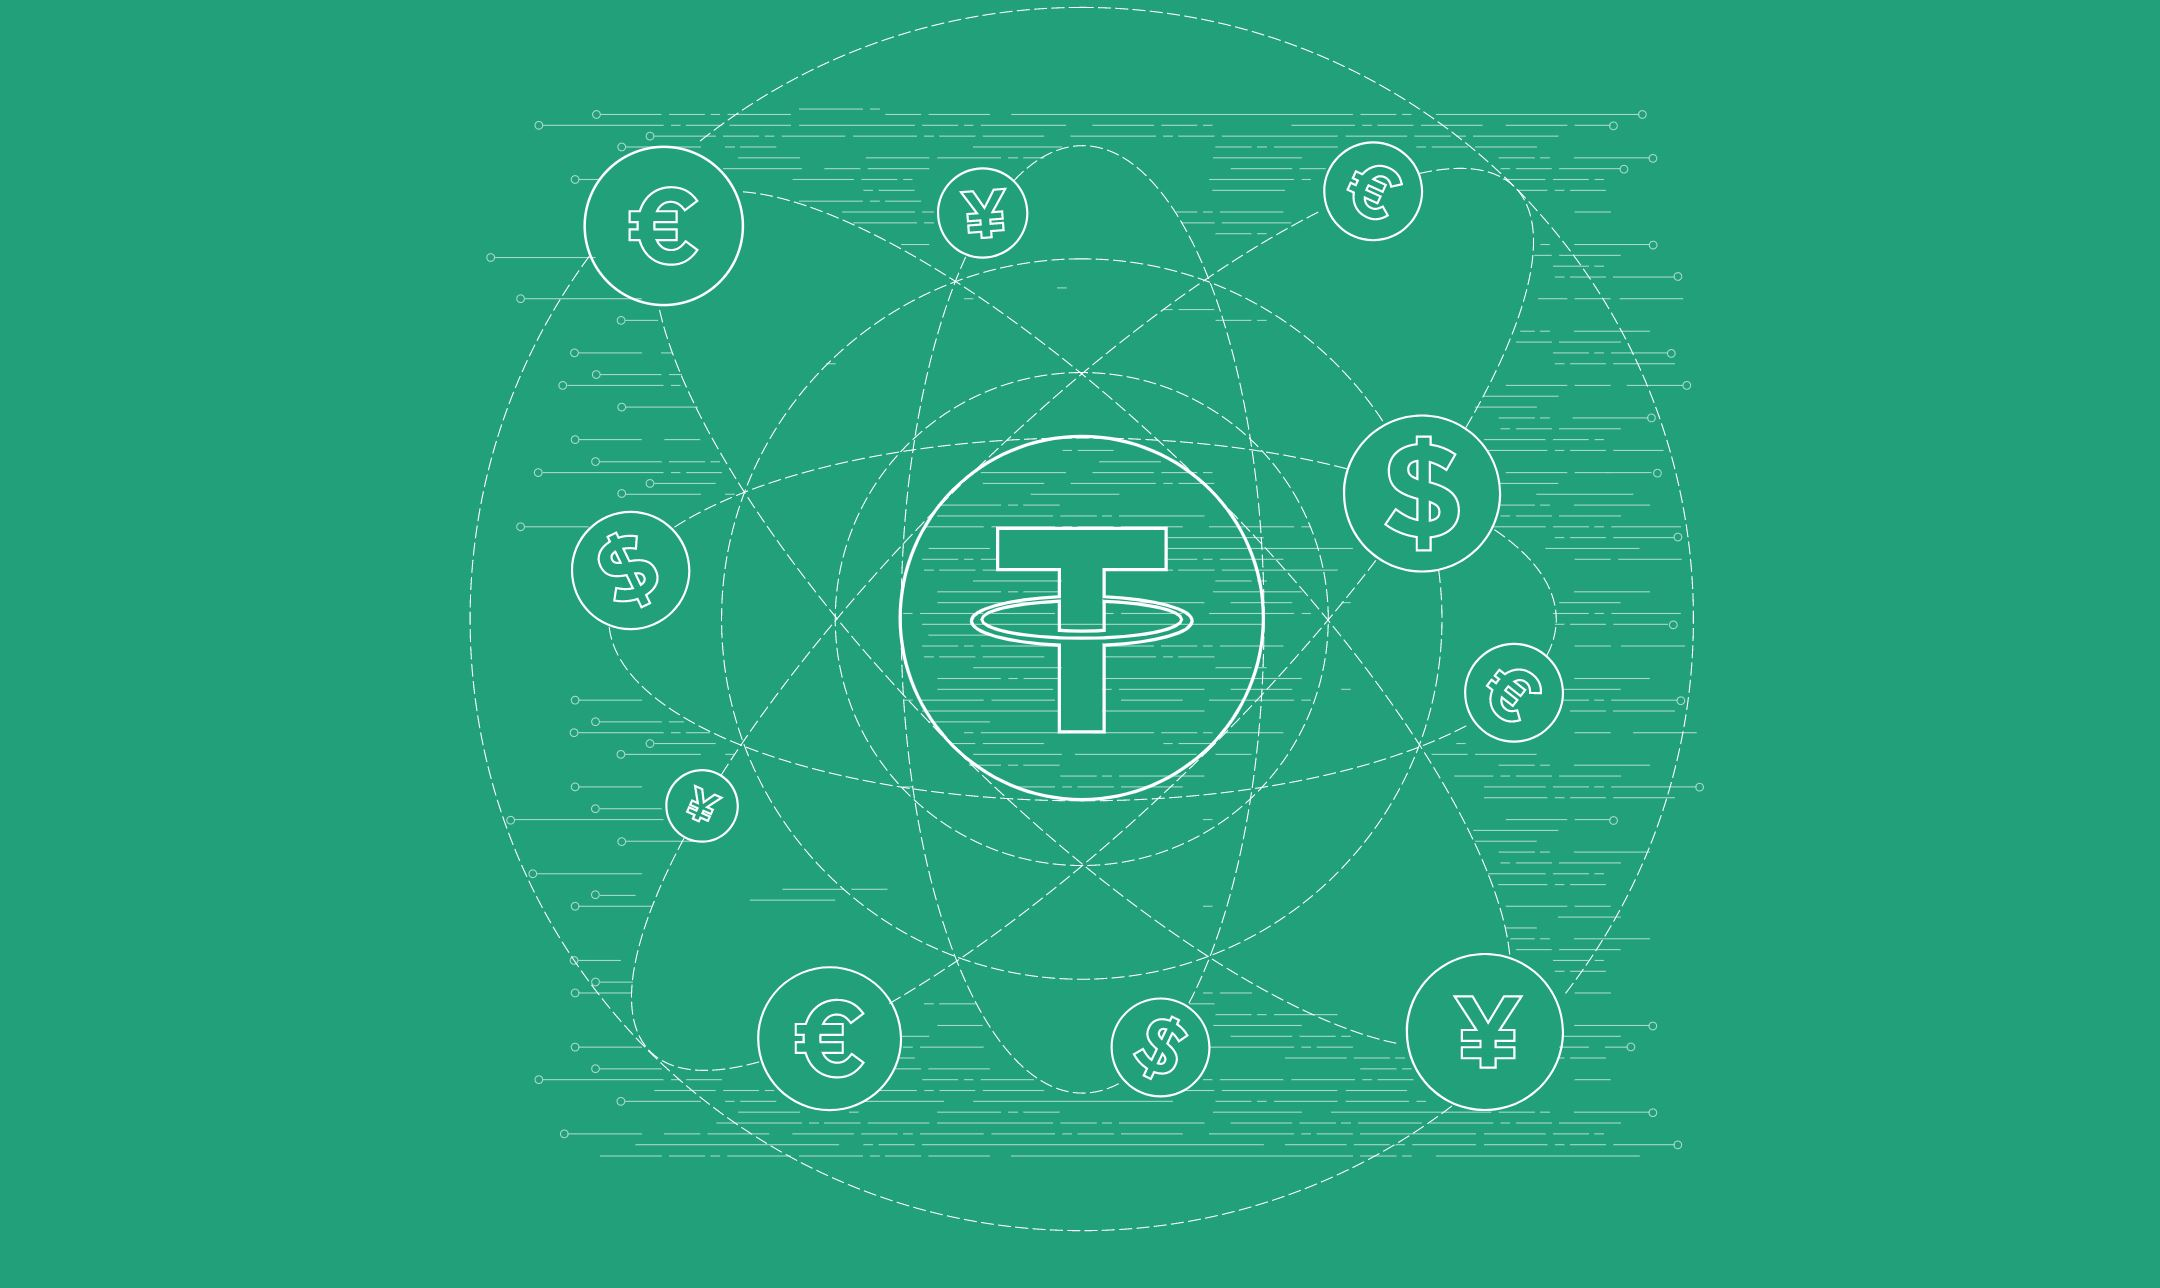 Tether logo and network